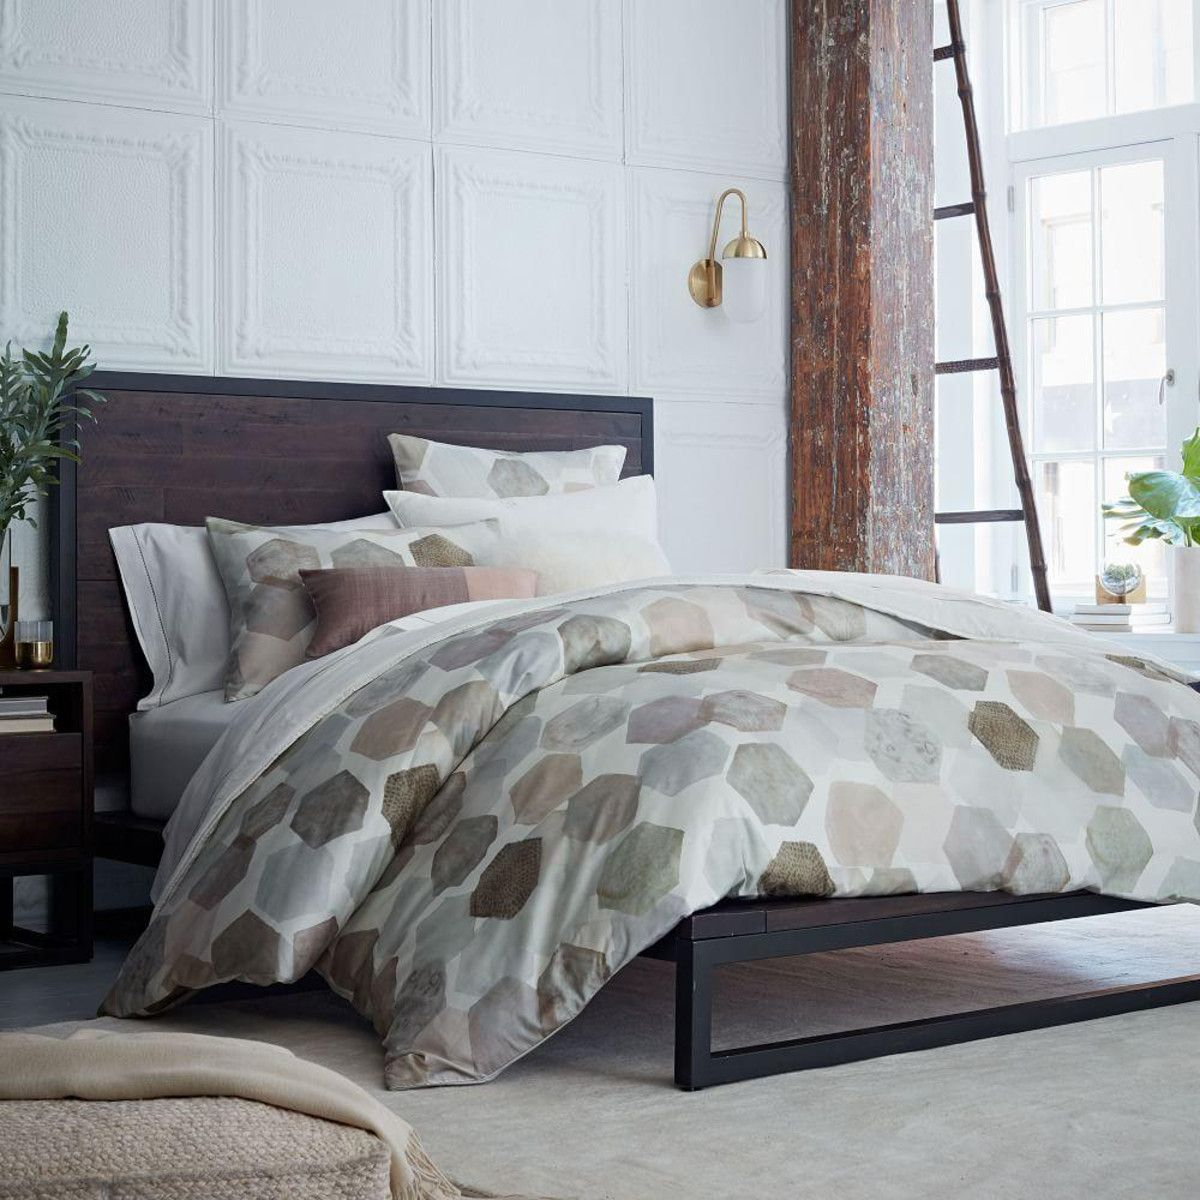 Organic Geo Sateen Duvet Cover + Pillowcases | For the Home ... : sateen quilt cover - Adamdwight.com